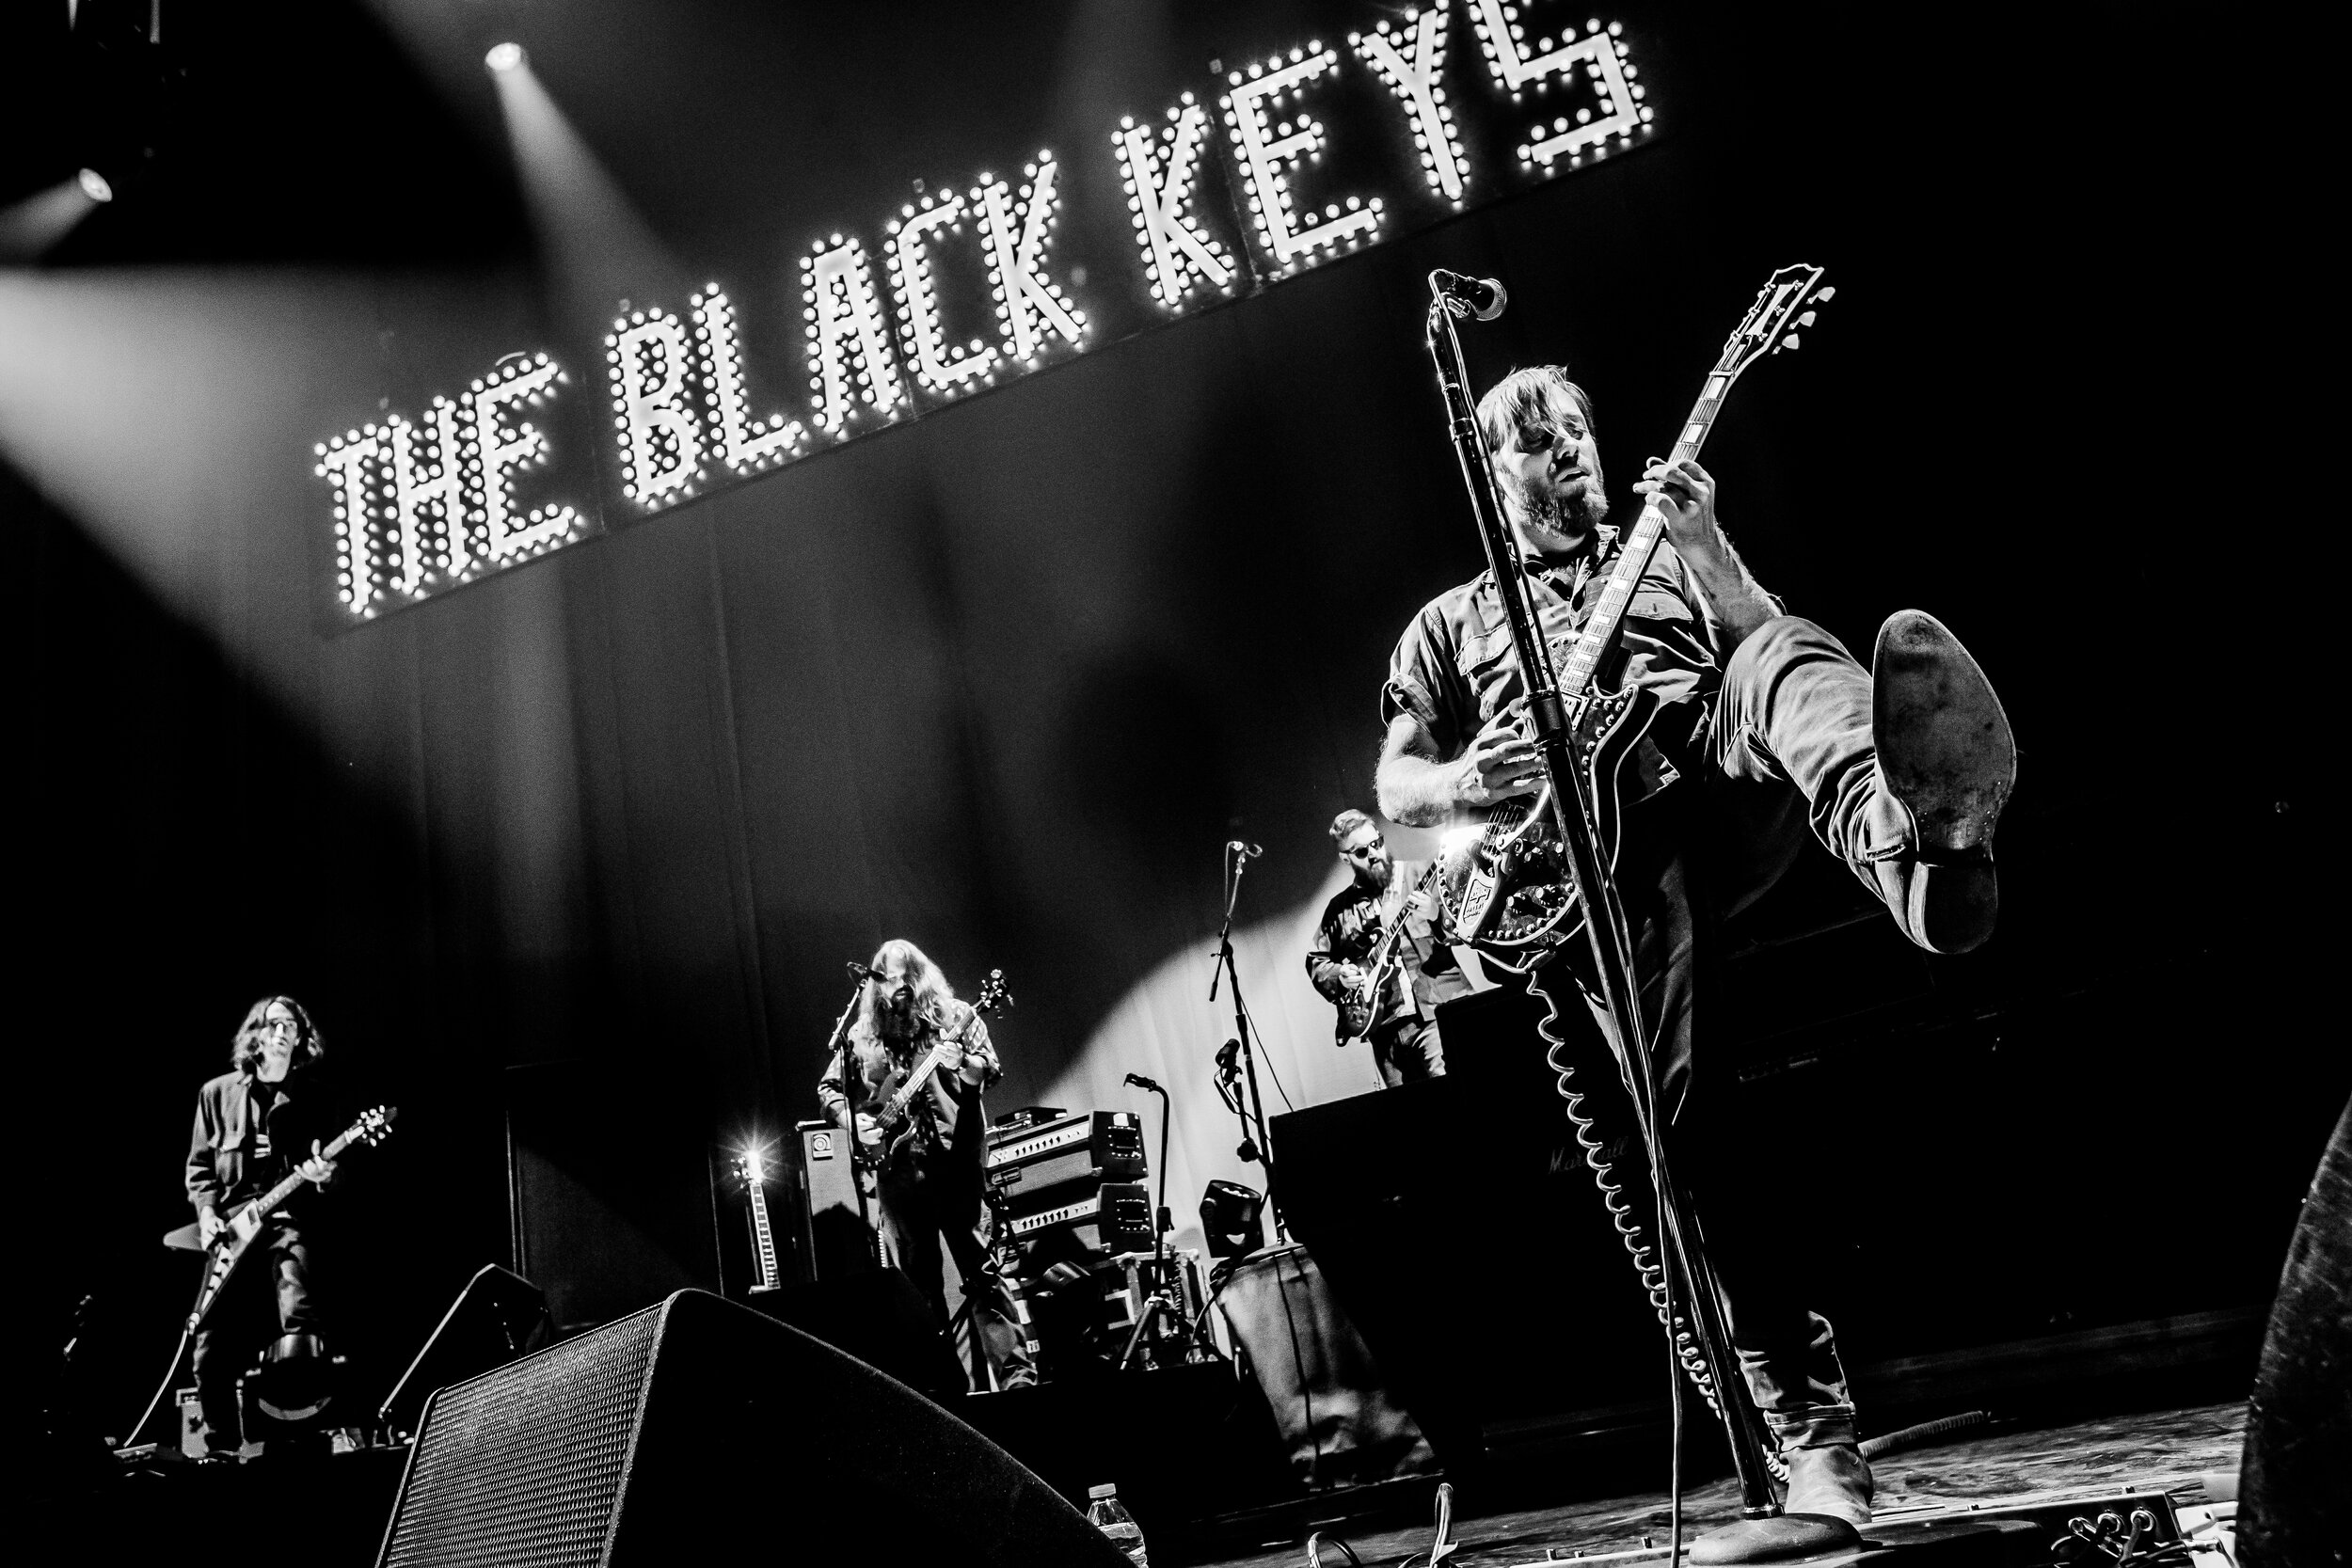 THE BLACK KEYS + MODEST MOUSE + REPEAT REPEAT